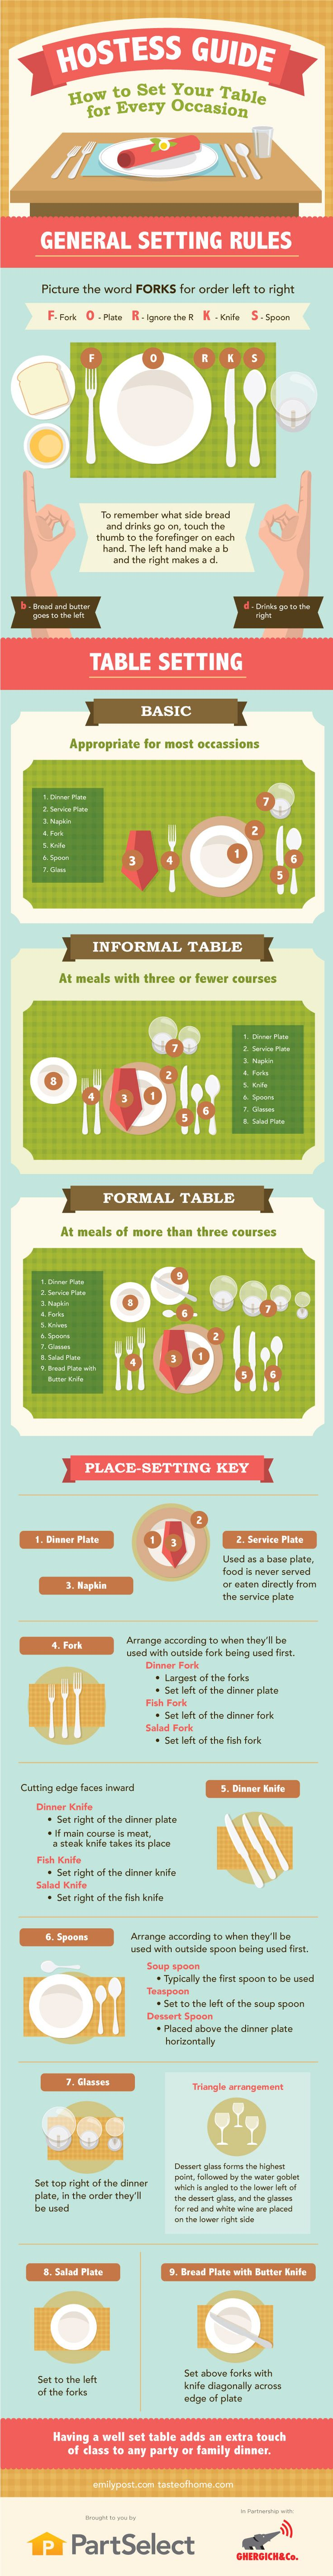 Learn how to set the perfect table with our hosting guide tips and tricks!